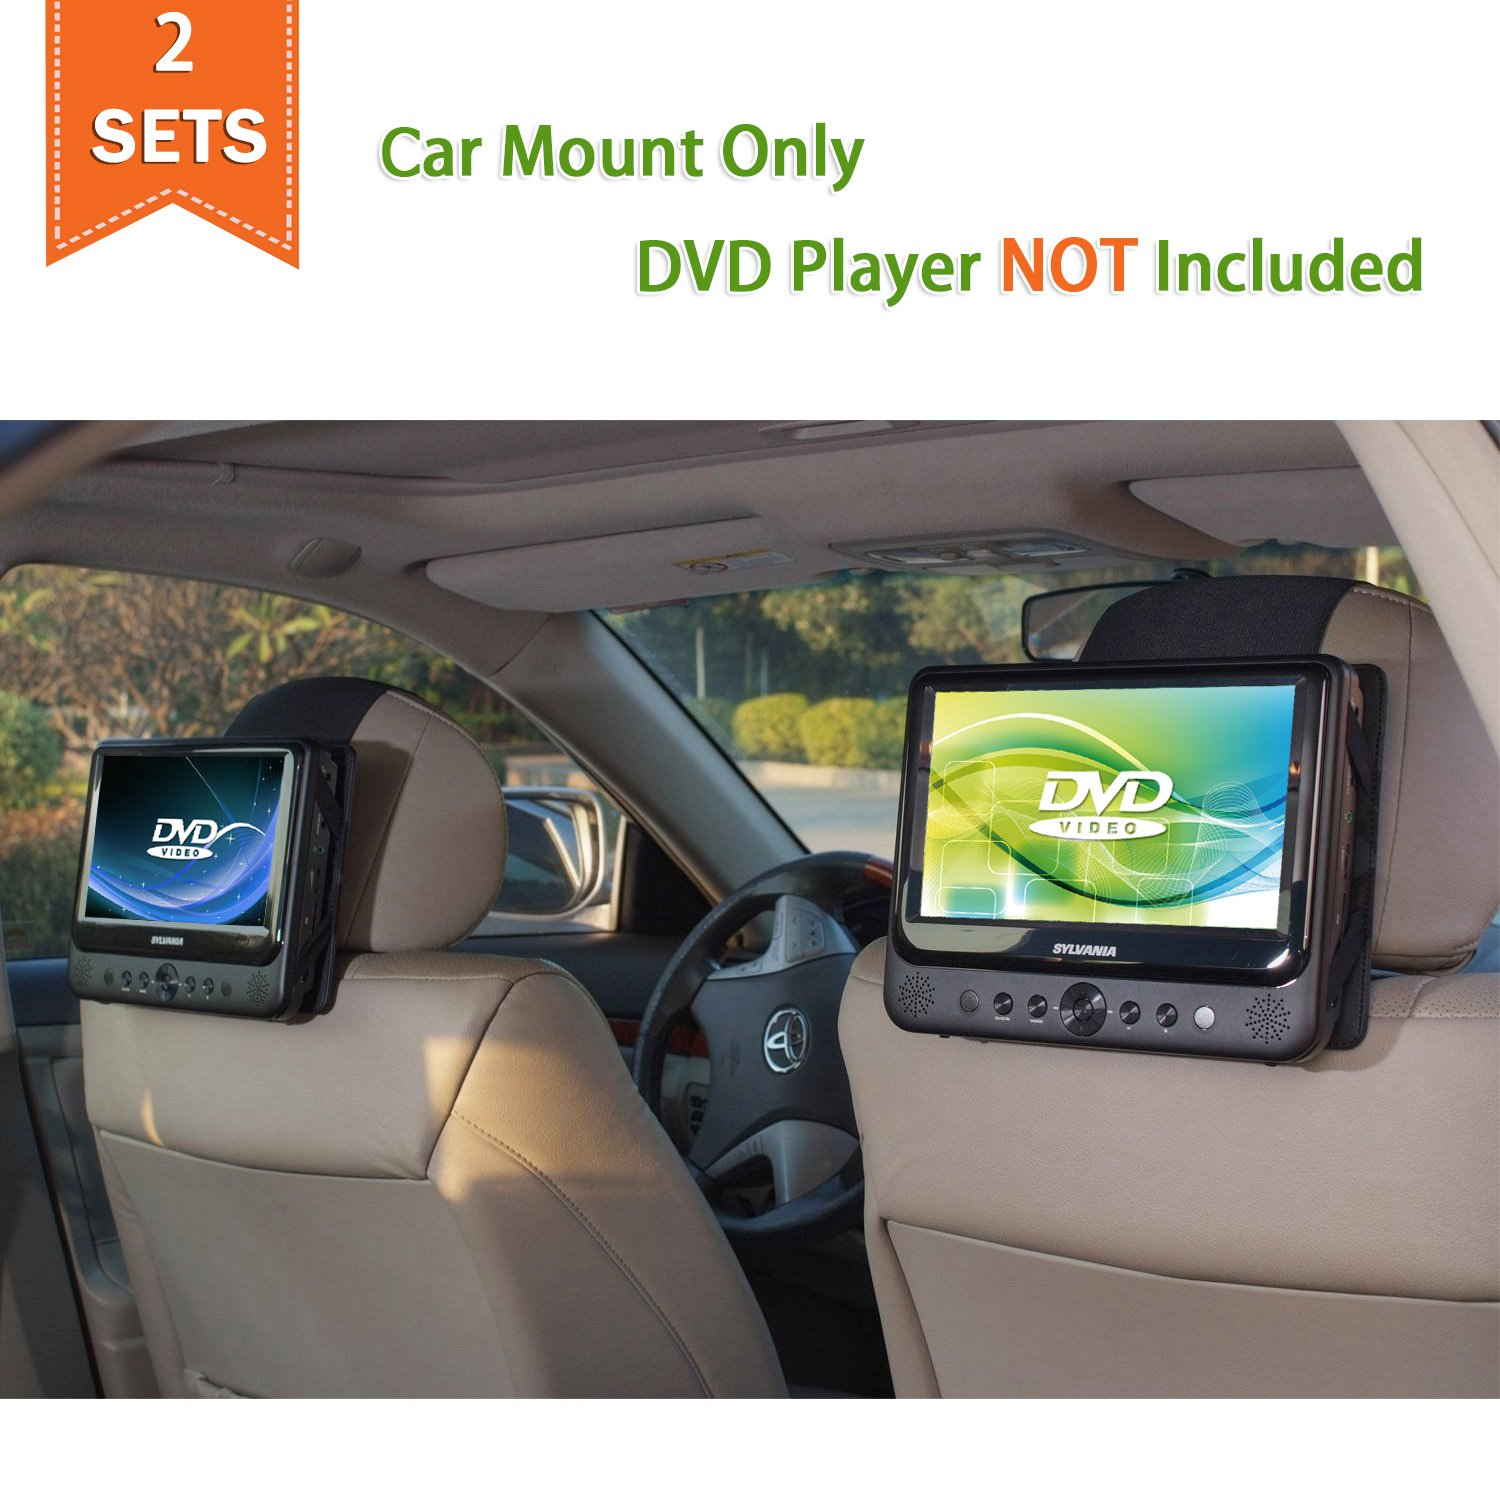 TFY Car Headrest Mount for Portable DVD Player - 2 Pieces by TFY